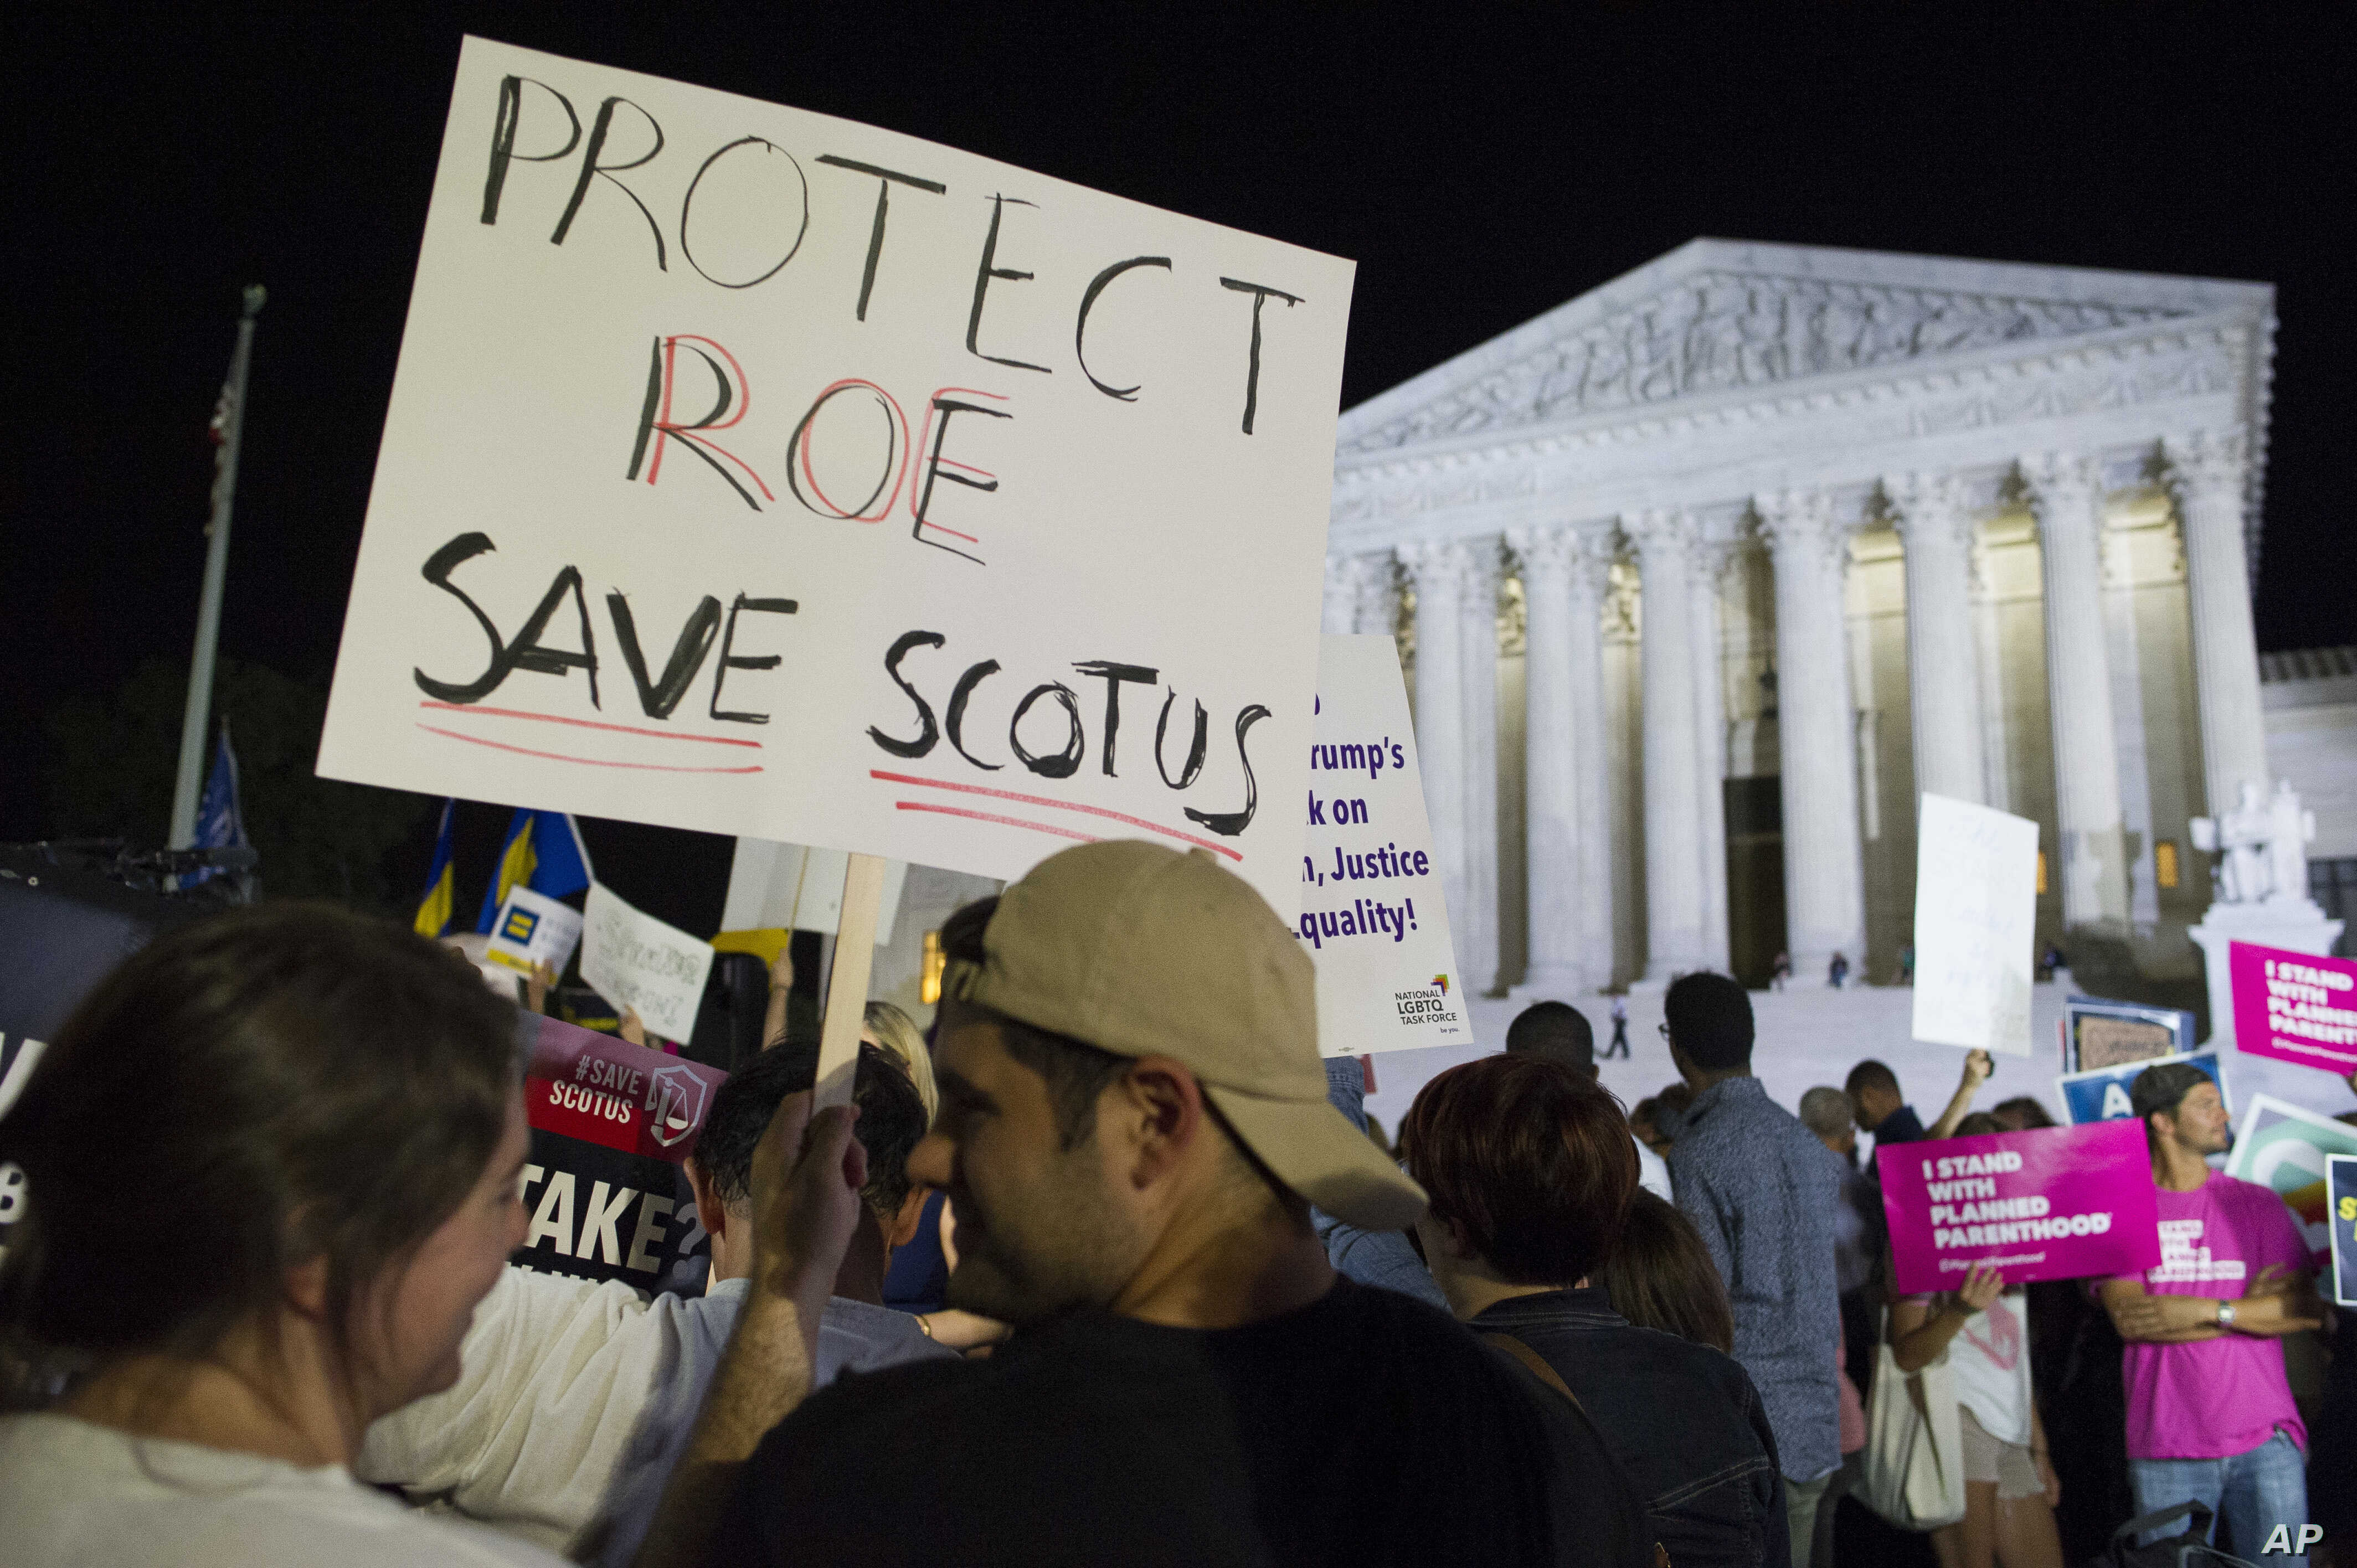 A demonstrator holds a sign as protesters gather in front of the Supreme Court in Washington, July 9, 2018, after President Donald Trump announced Judge Brett Kavanaugh as his Supreme Court nominee.